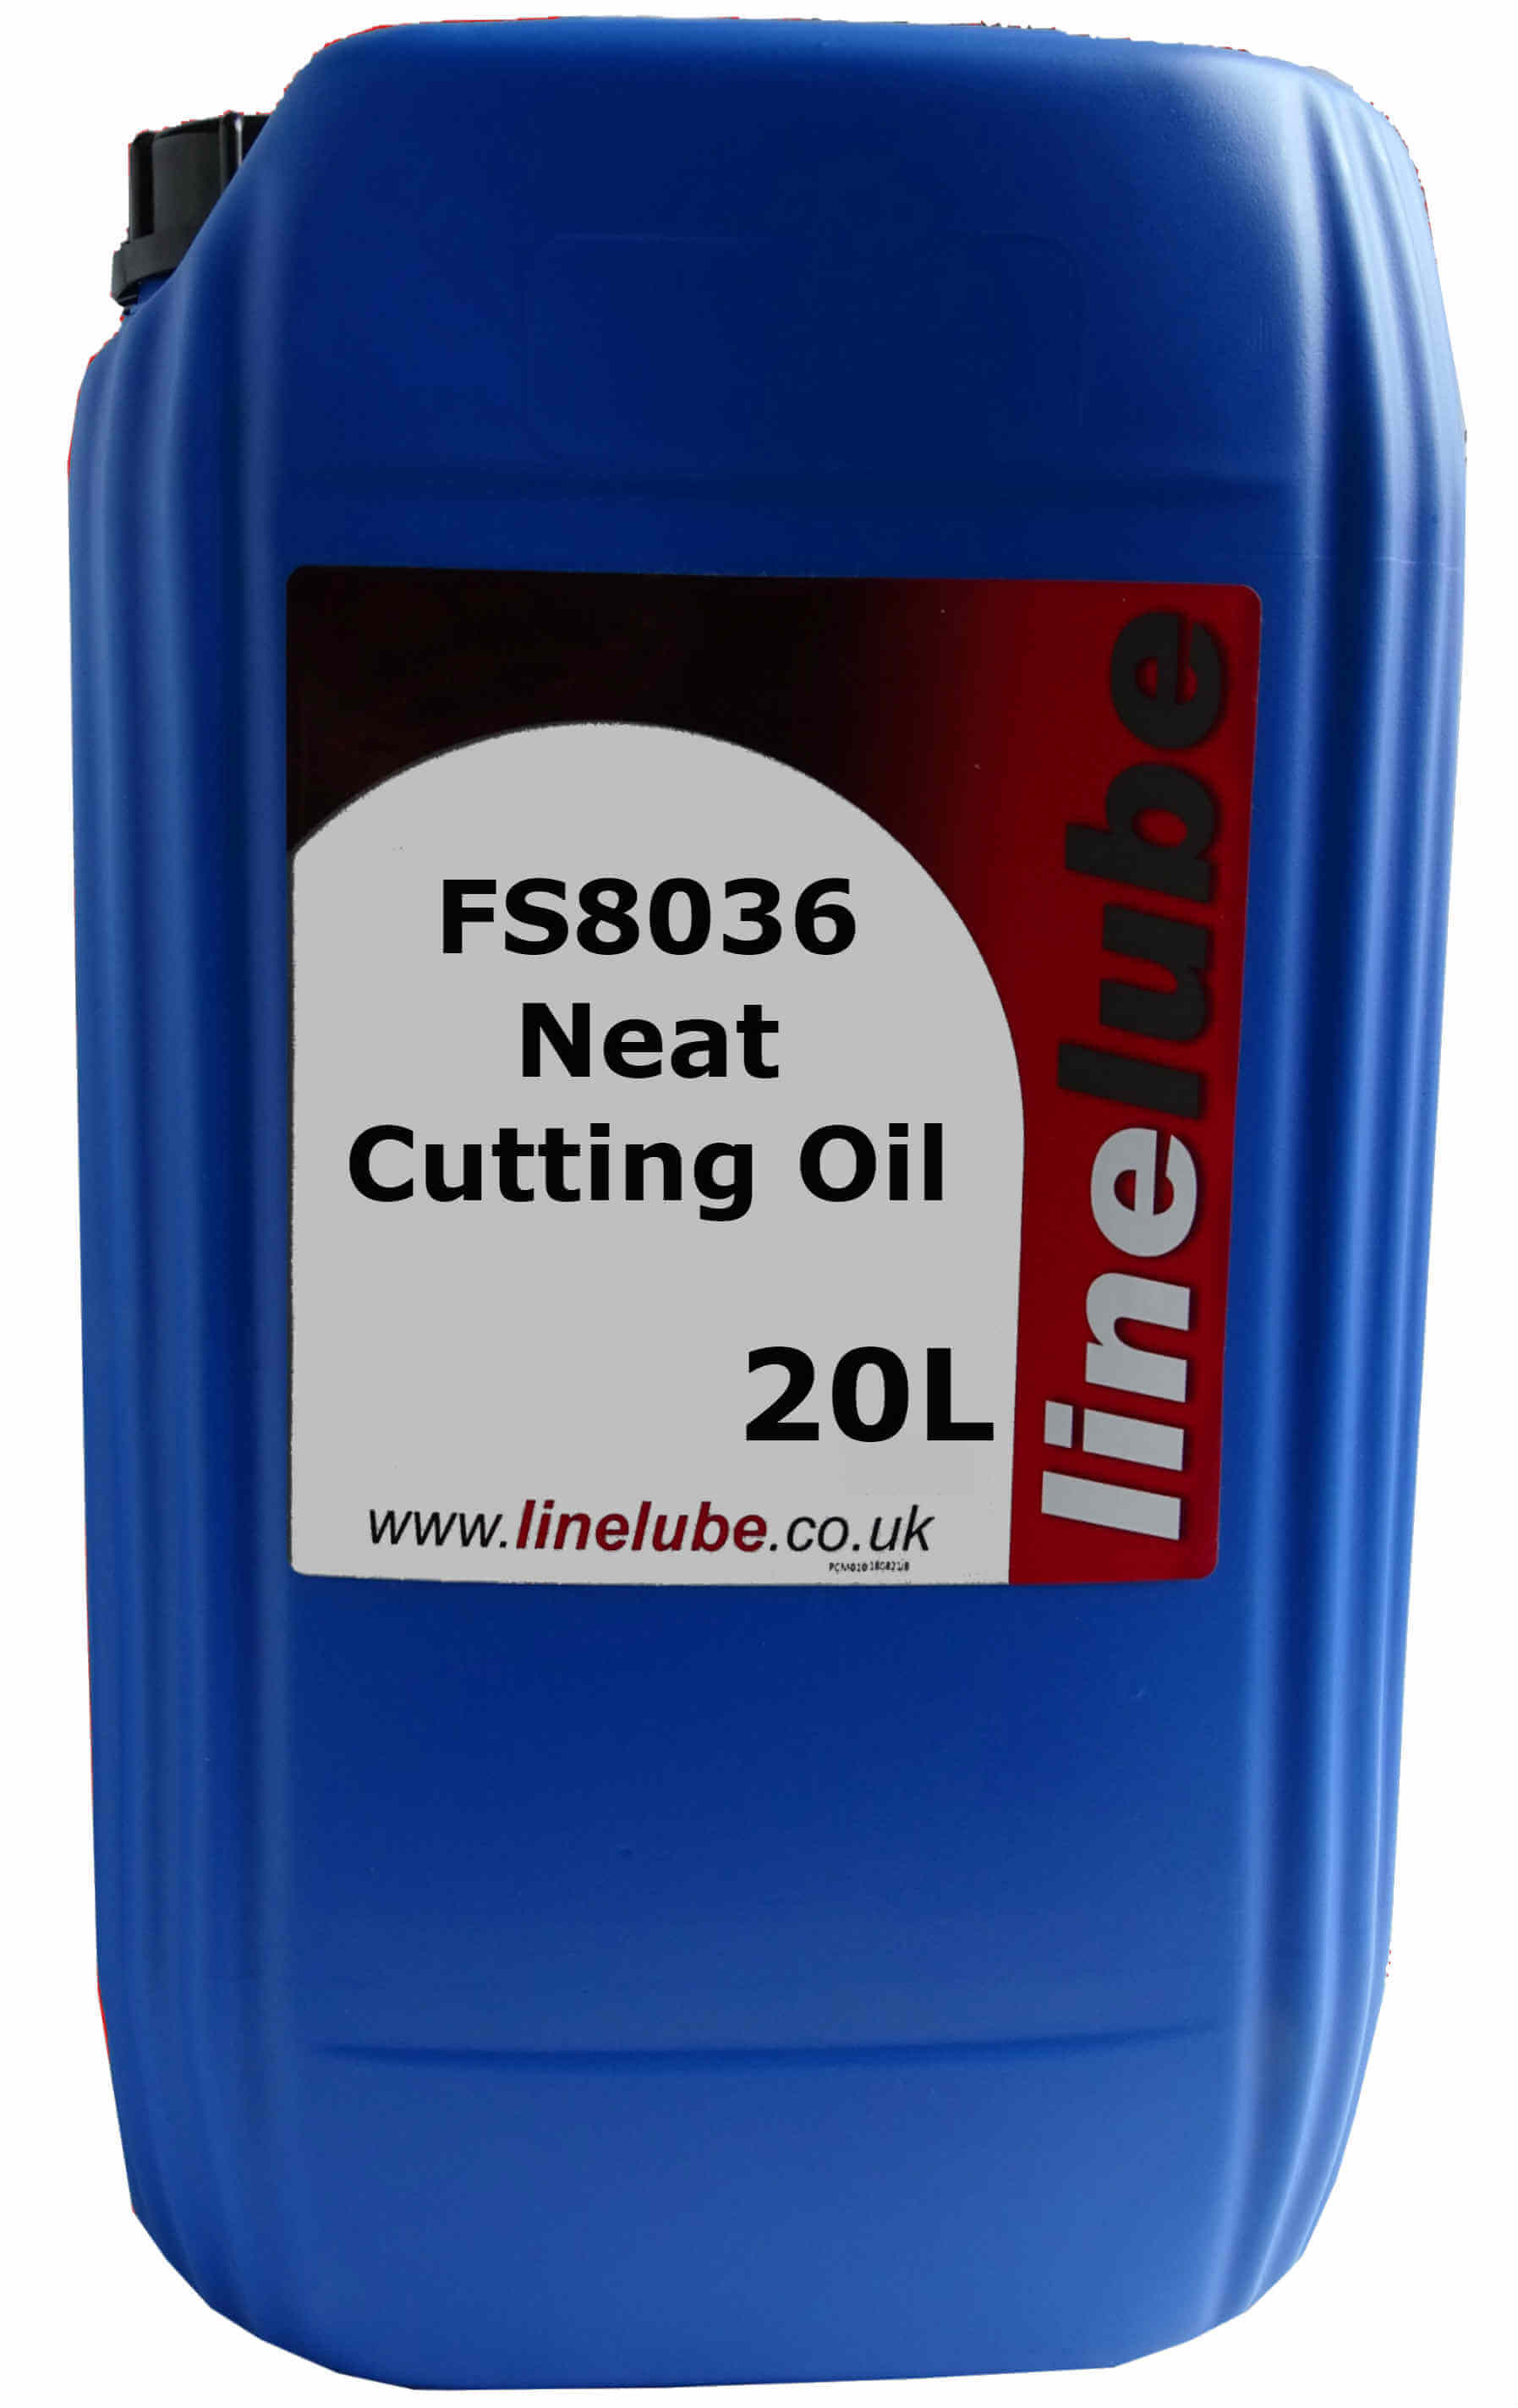 linelube FS8036 Neat Cutting Oil